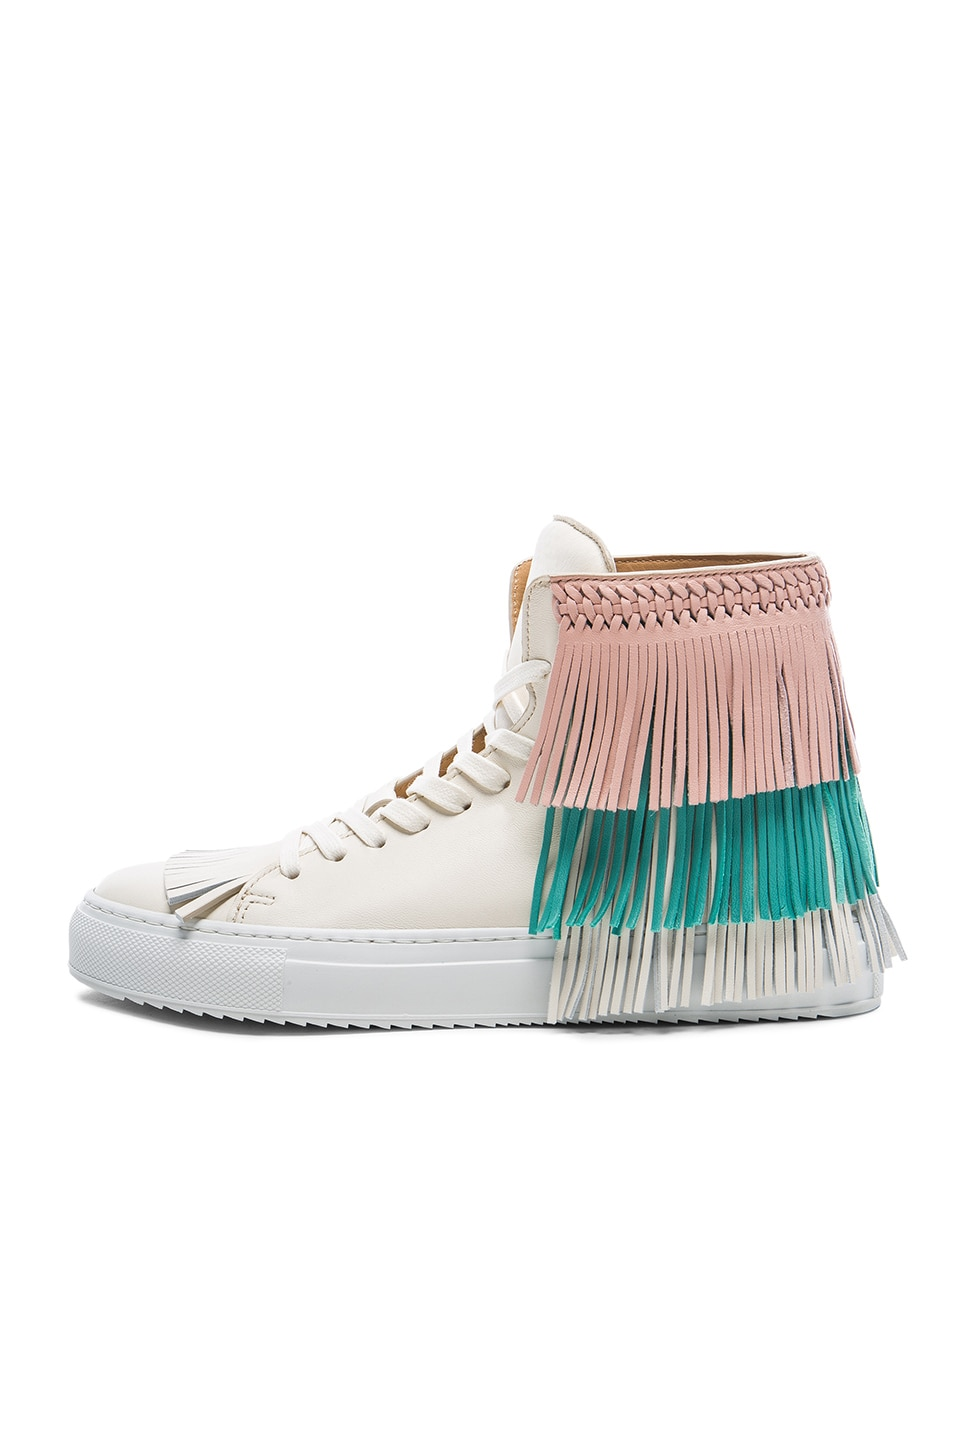 Image 5 of Buscemi 125MM Leather New Fringe Sneakers in Cream, Pink & Aqua Marine